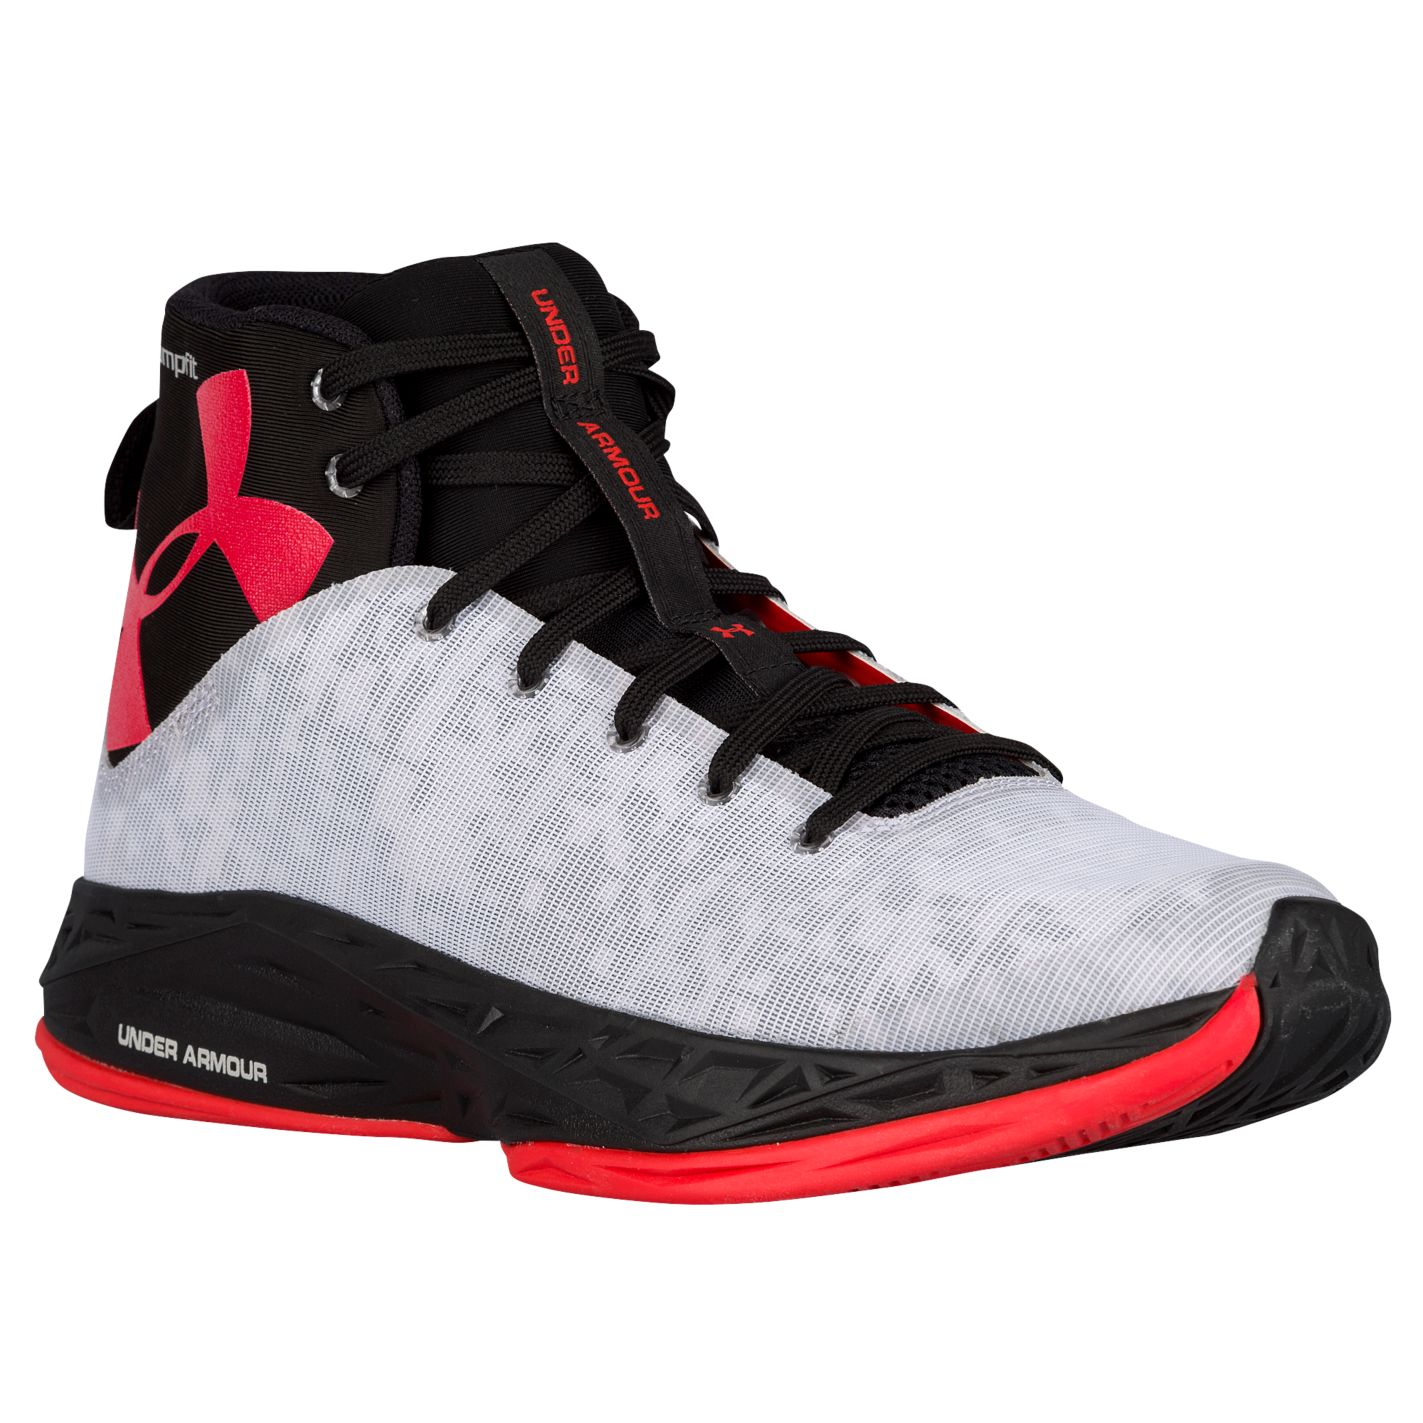 The Under Armour Fire Shot is Available